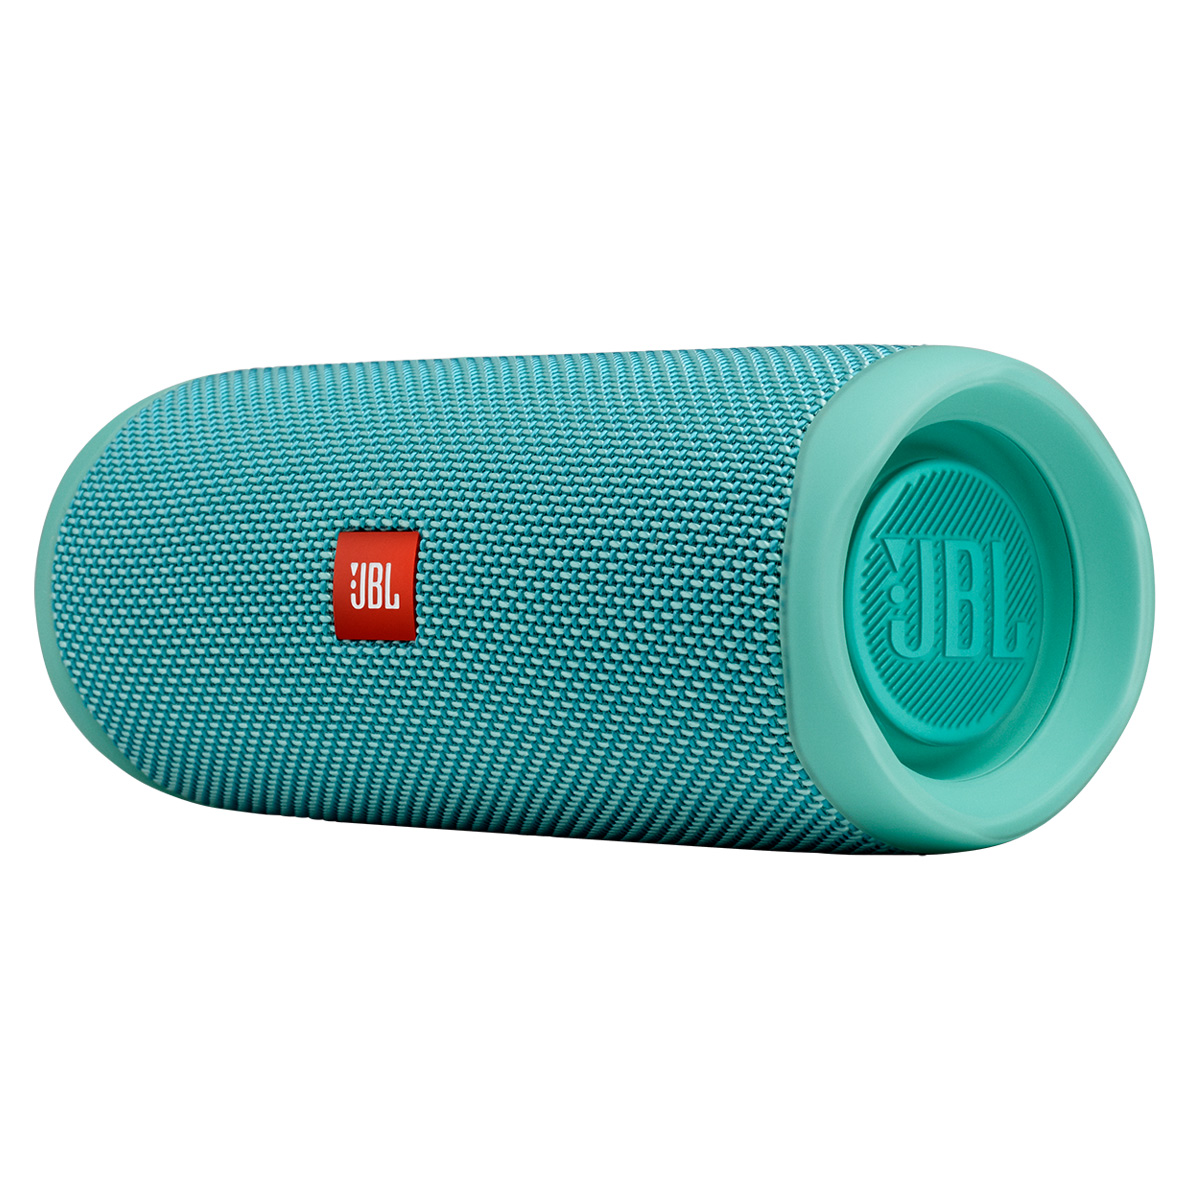 JBL-Flip-5-Portable-Waterproof-Bluetooth-Speaker thumbnail 39